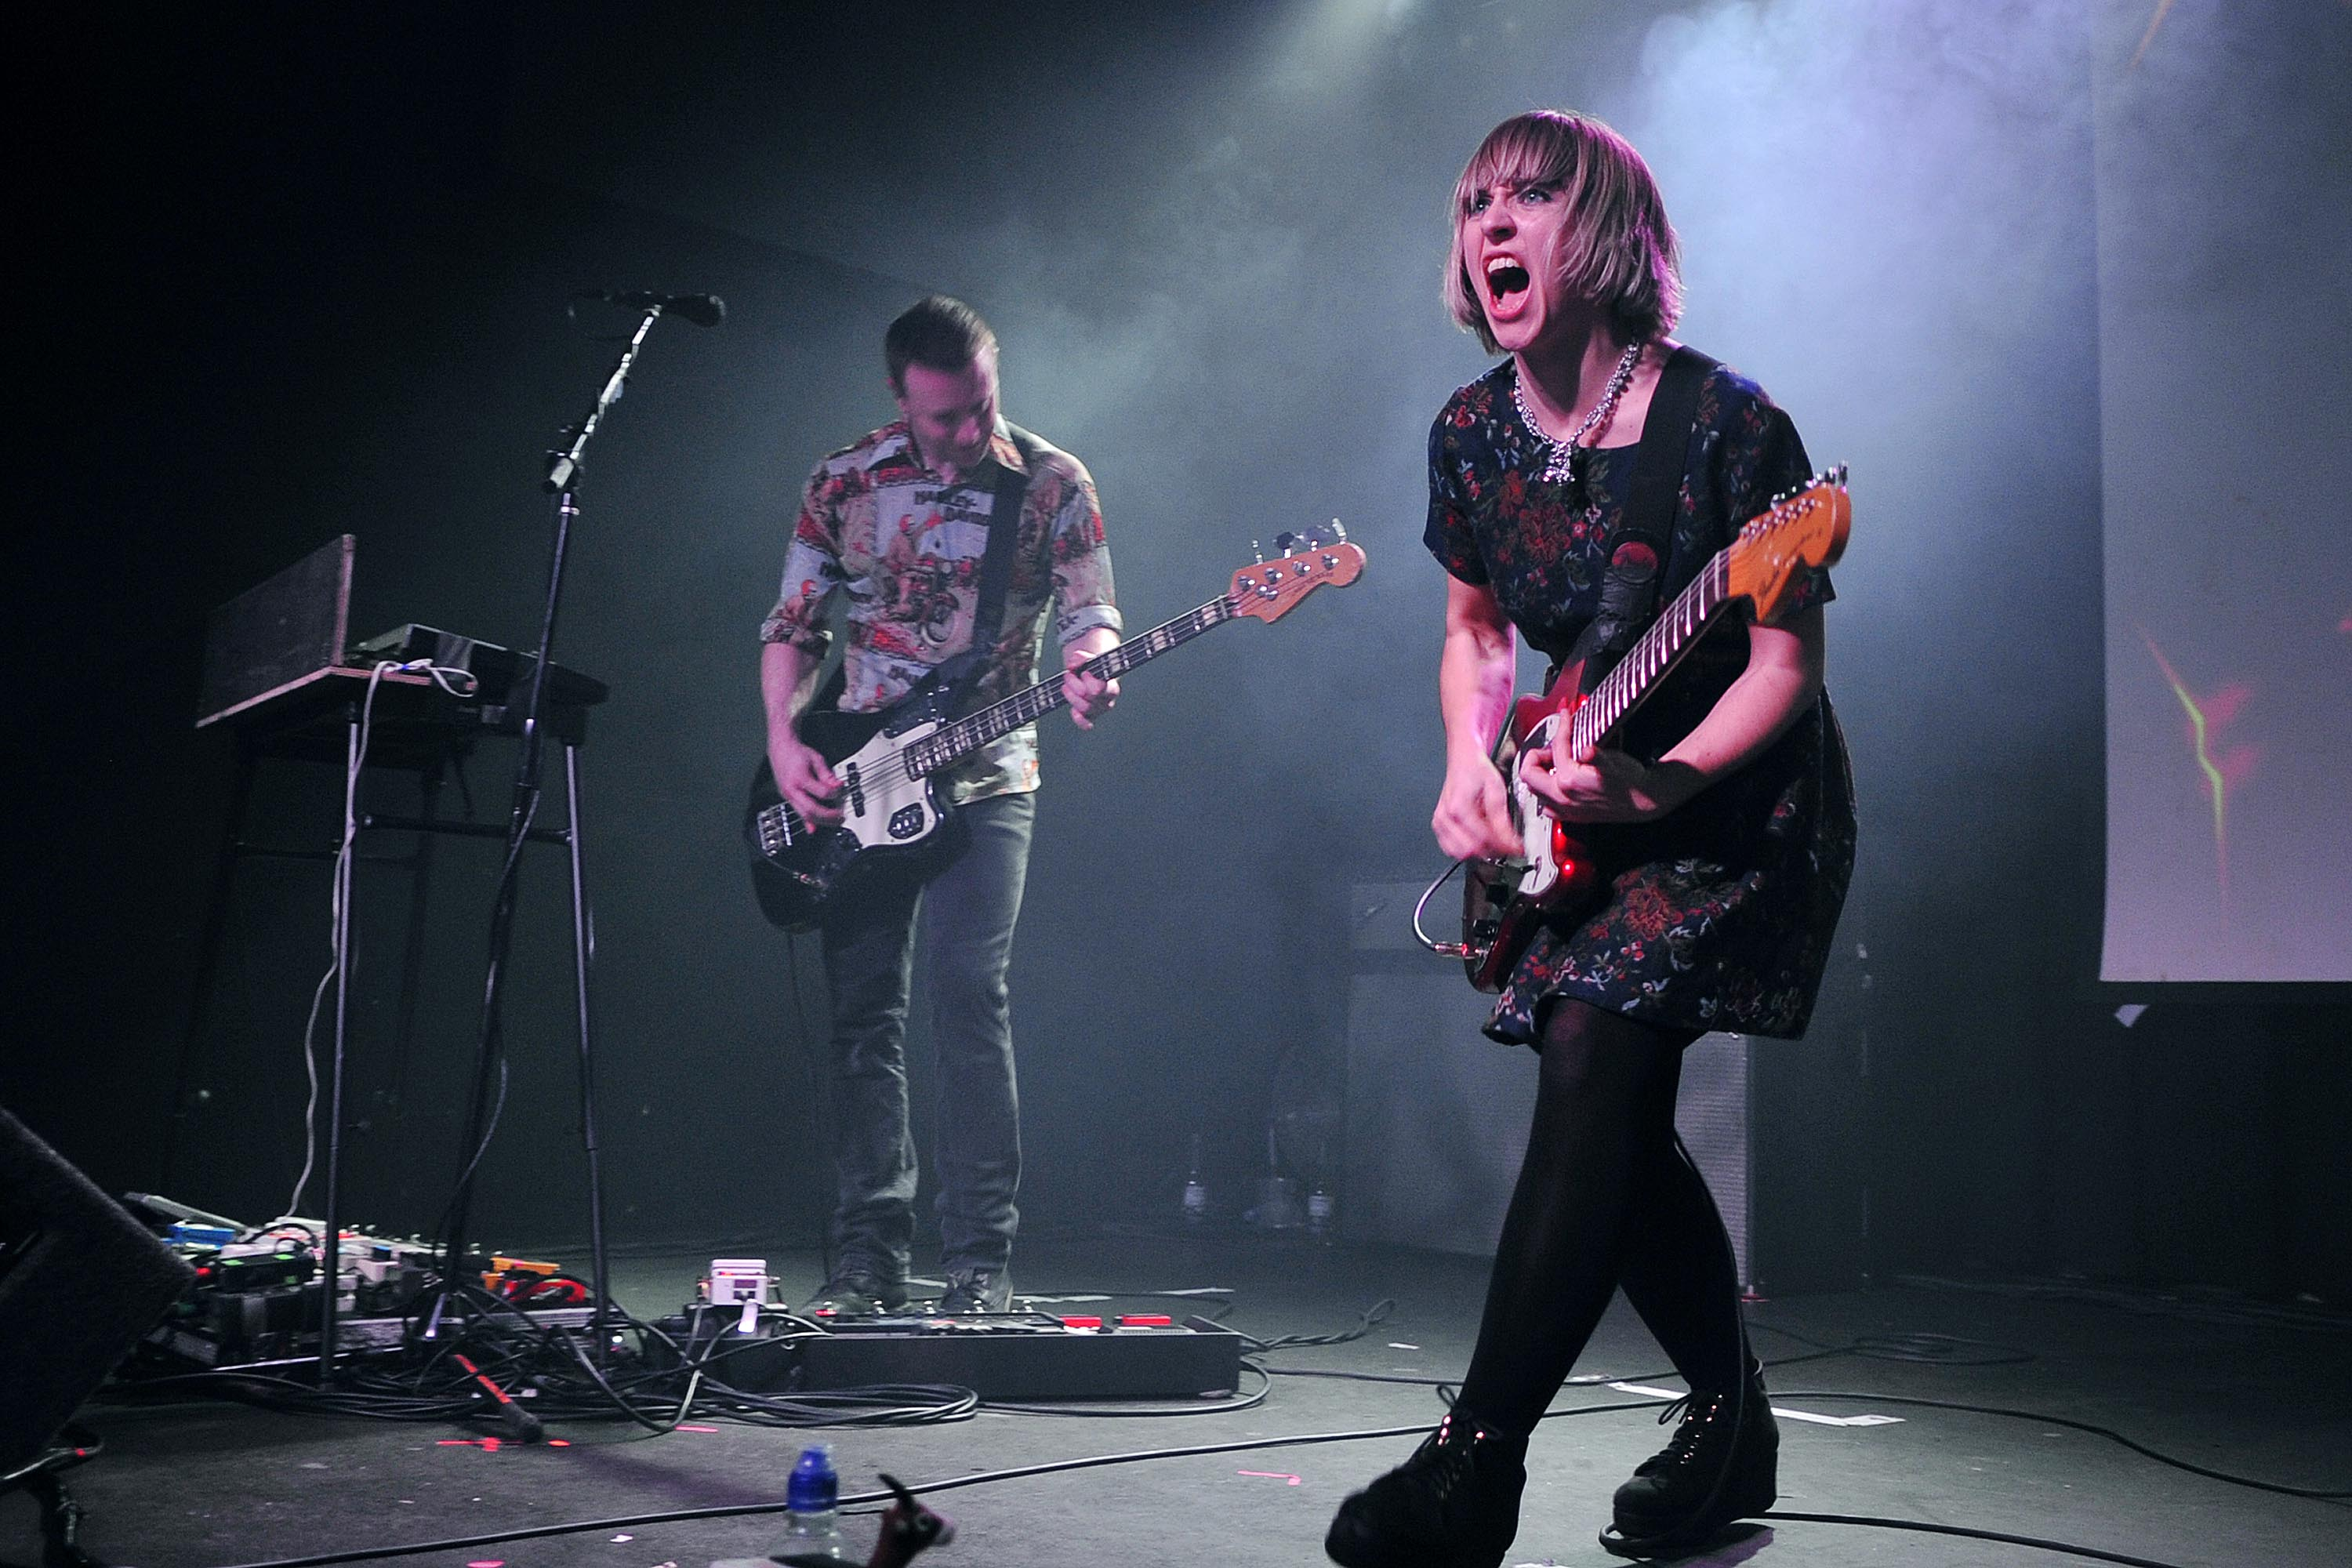 PODCAST EPISODE 033: Ritzy Bryan of Joy Formidable Talks Music Business, Relationships, and Finding Her Sound